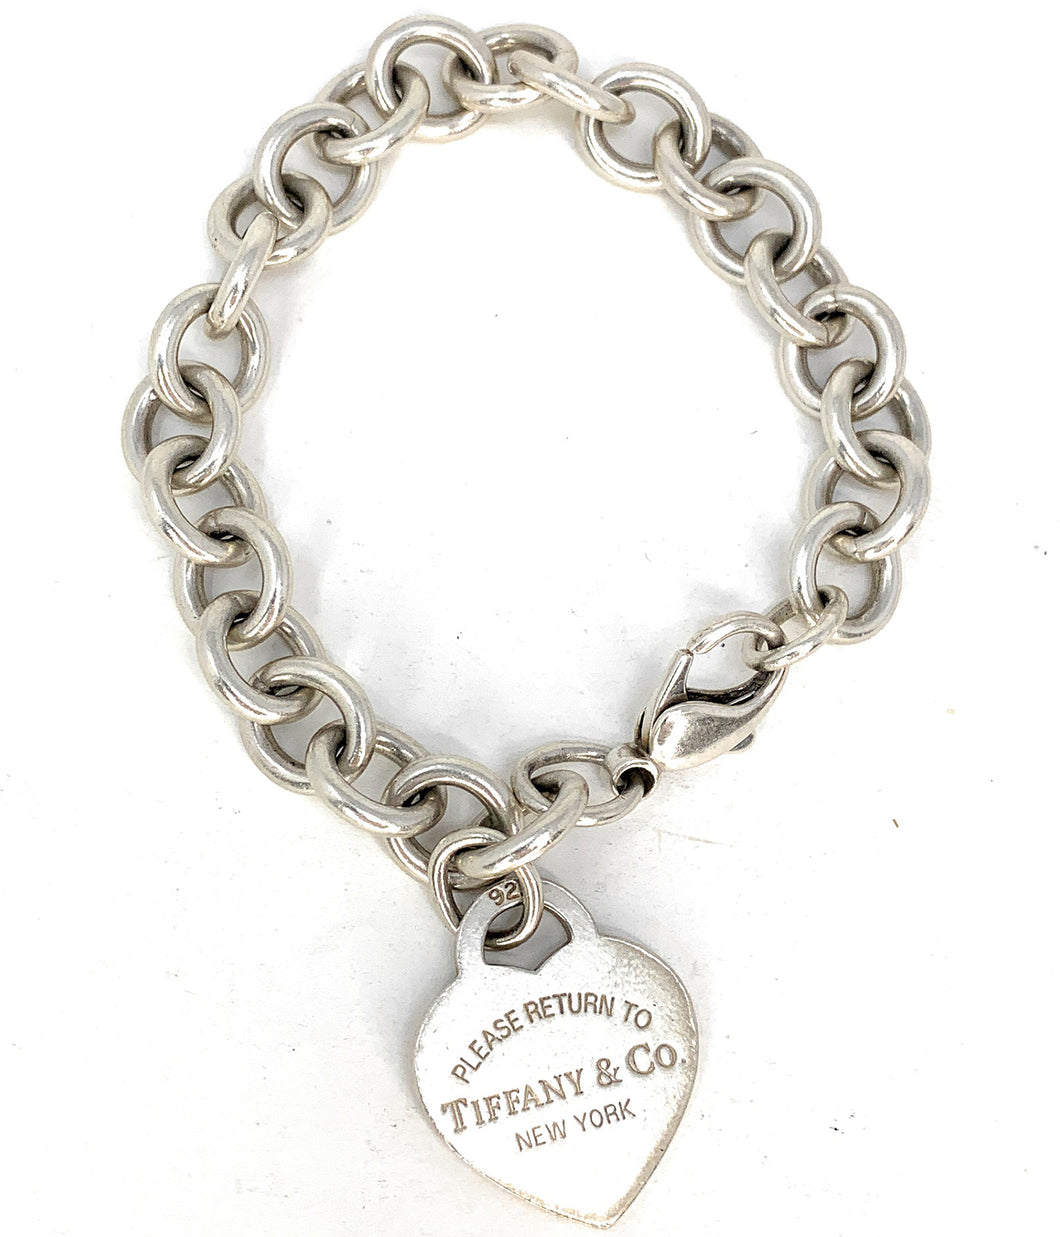 Tiffany & Co. Sterling Silver Return To Tiffany Heart Tag Bracelet